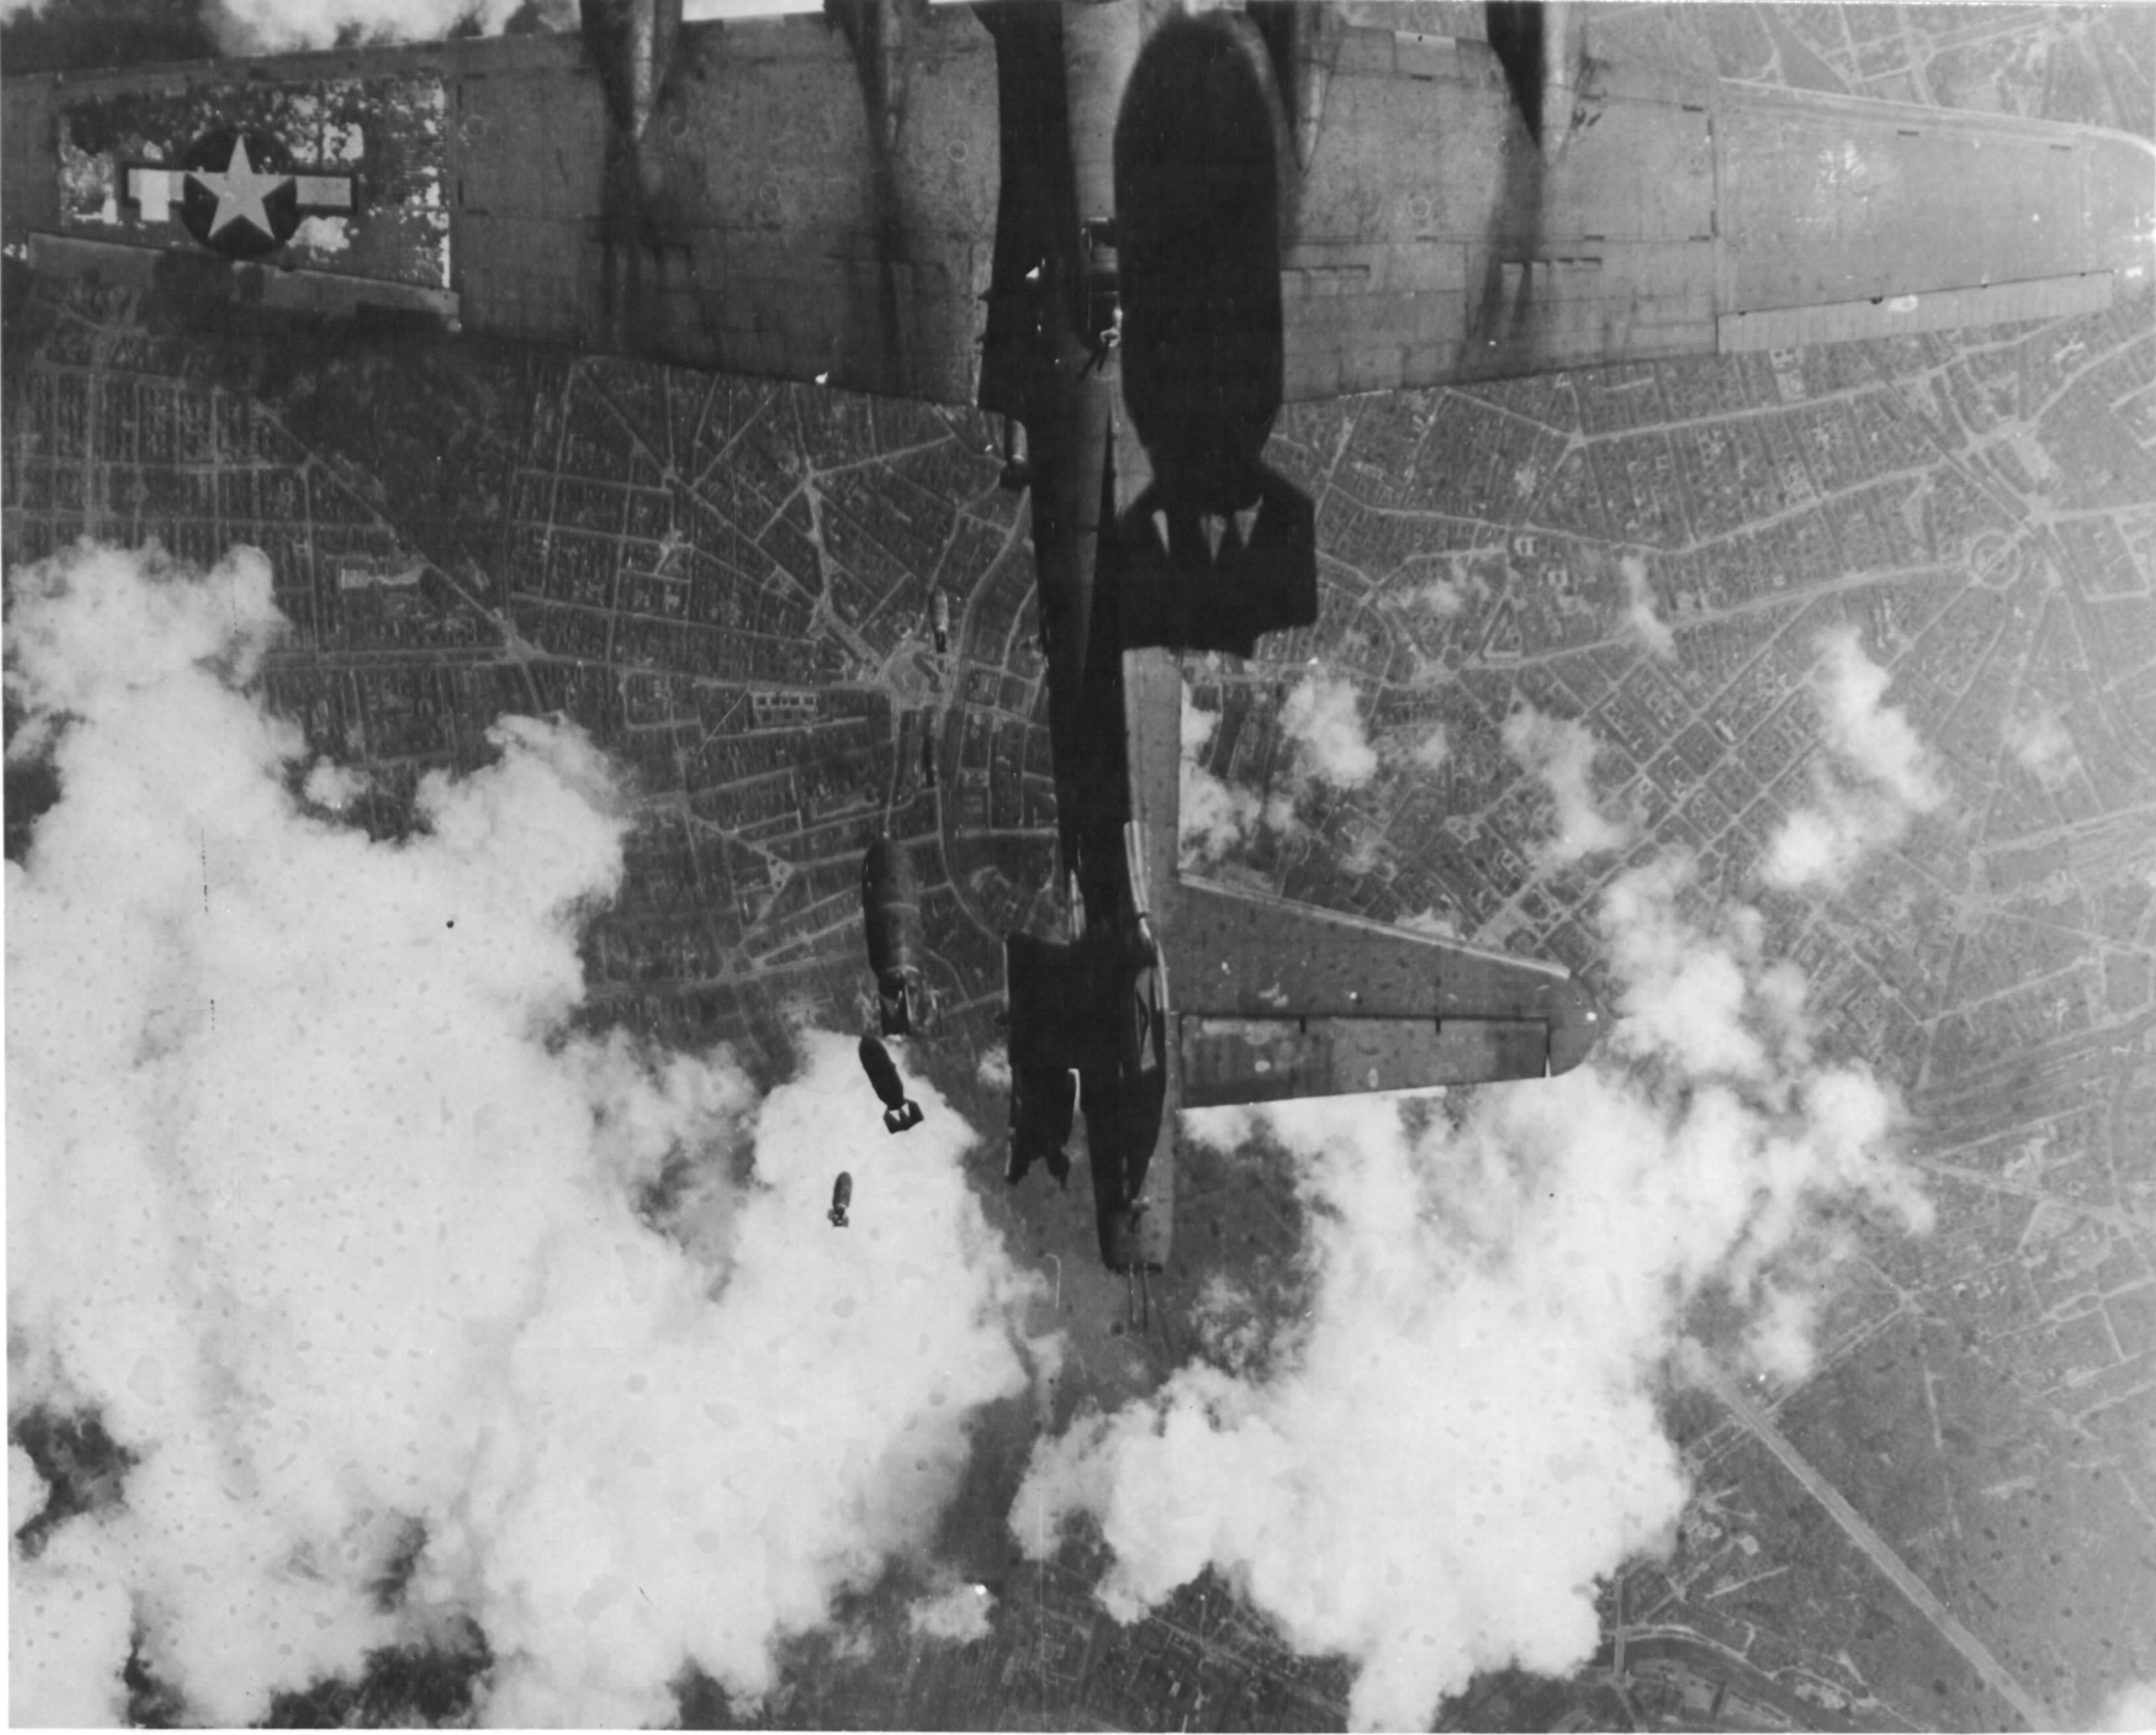 B-17G Fortress 'Miss Donna Mae II' drifted under another bomber on a bomb run over Berlin, 19 May 1944. A 1,000 lb bomb from above tore off the left stabilizer and sent the plane into an uncontrollable spin. All 11 were killed. Photo 2 of 4